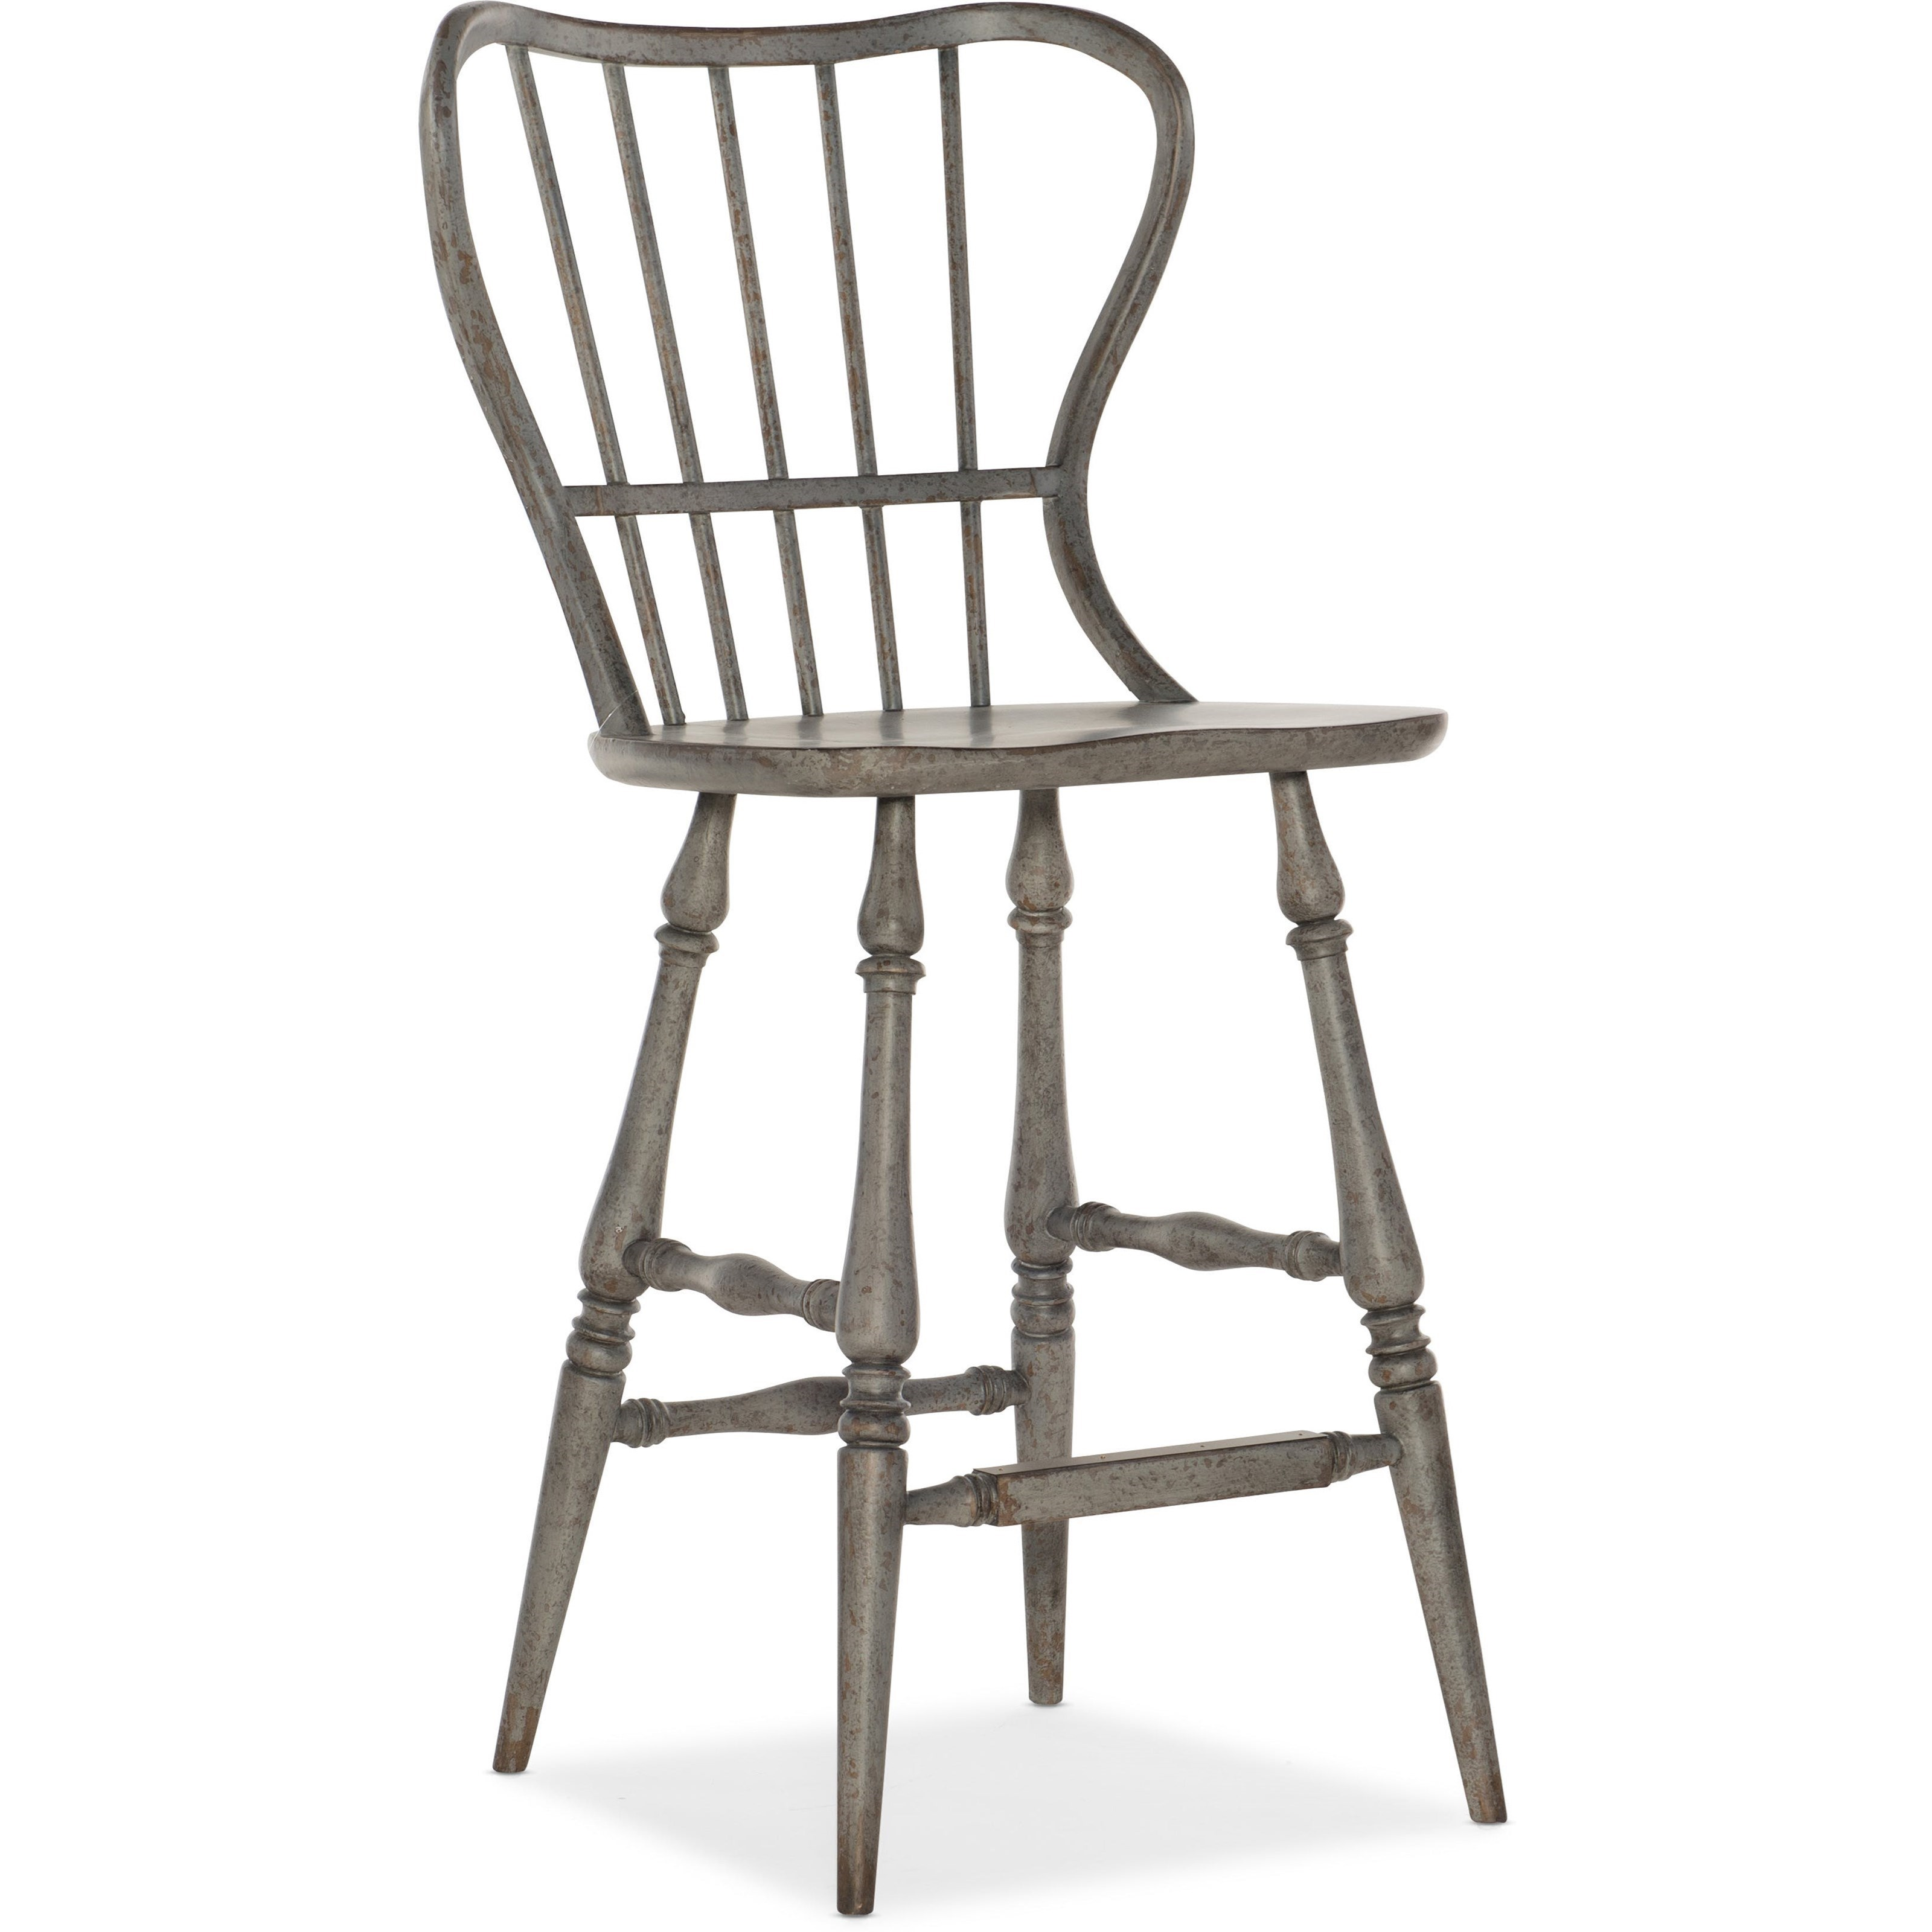 Ciao Bella Spindle Back Bar Stool by Hooker Furniture at Story & Lee Furniture